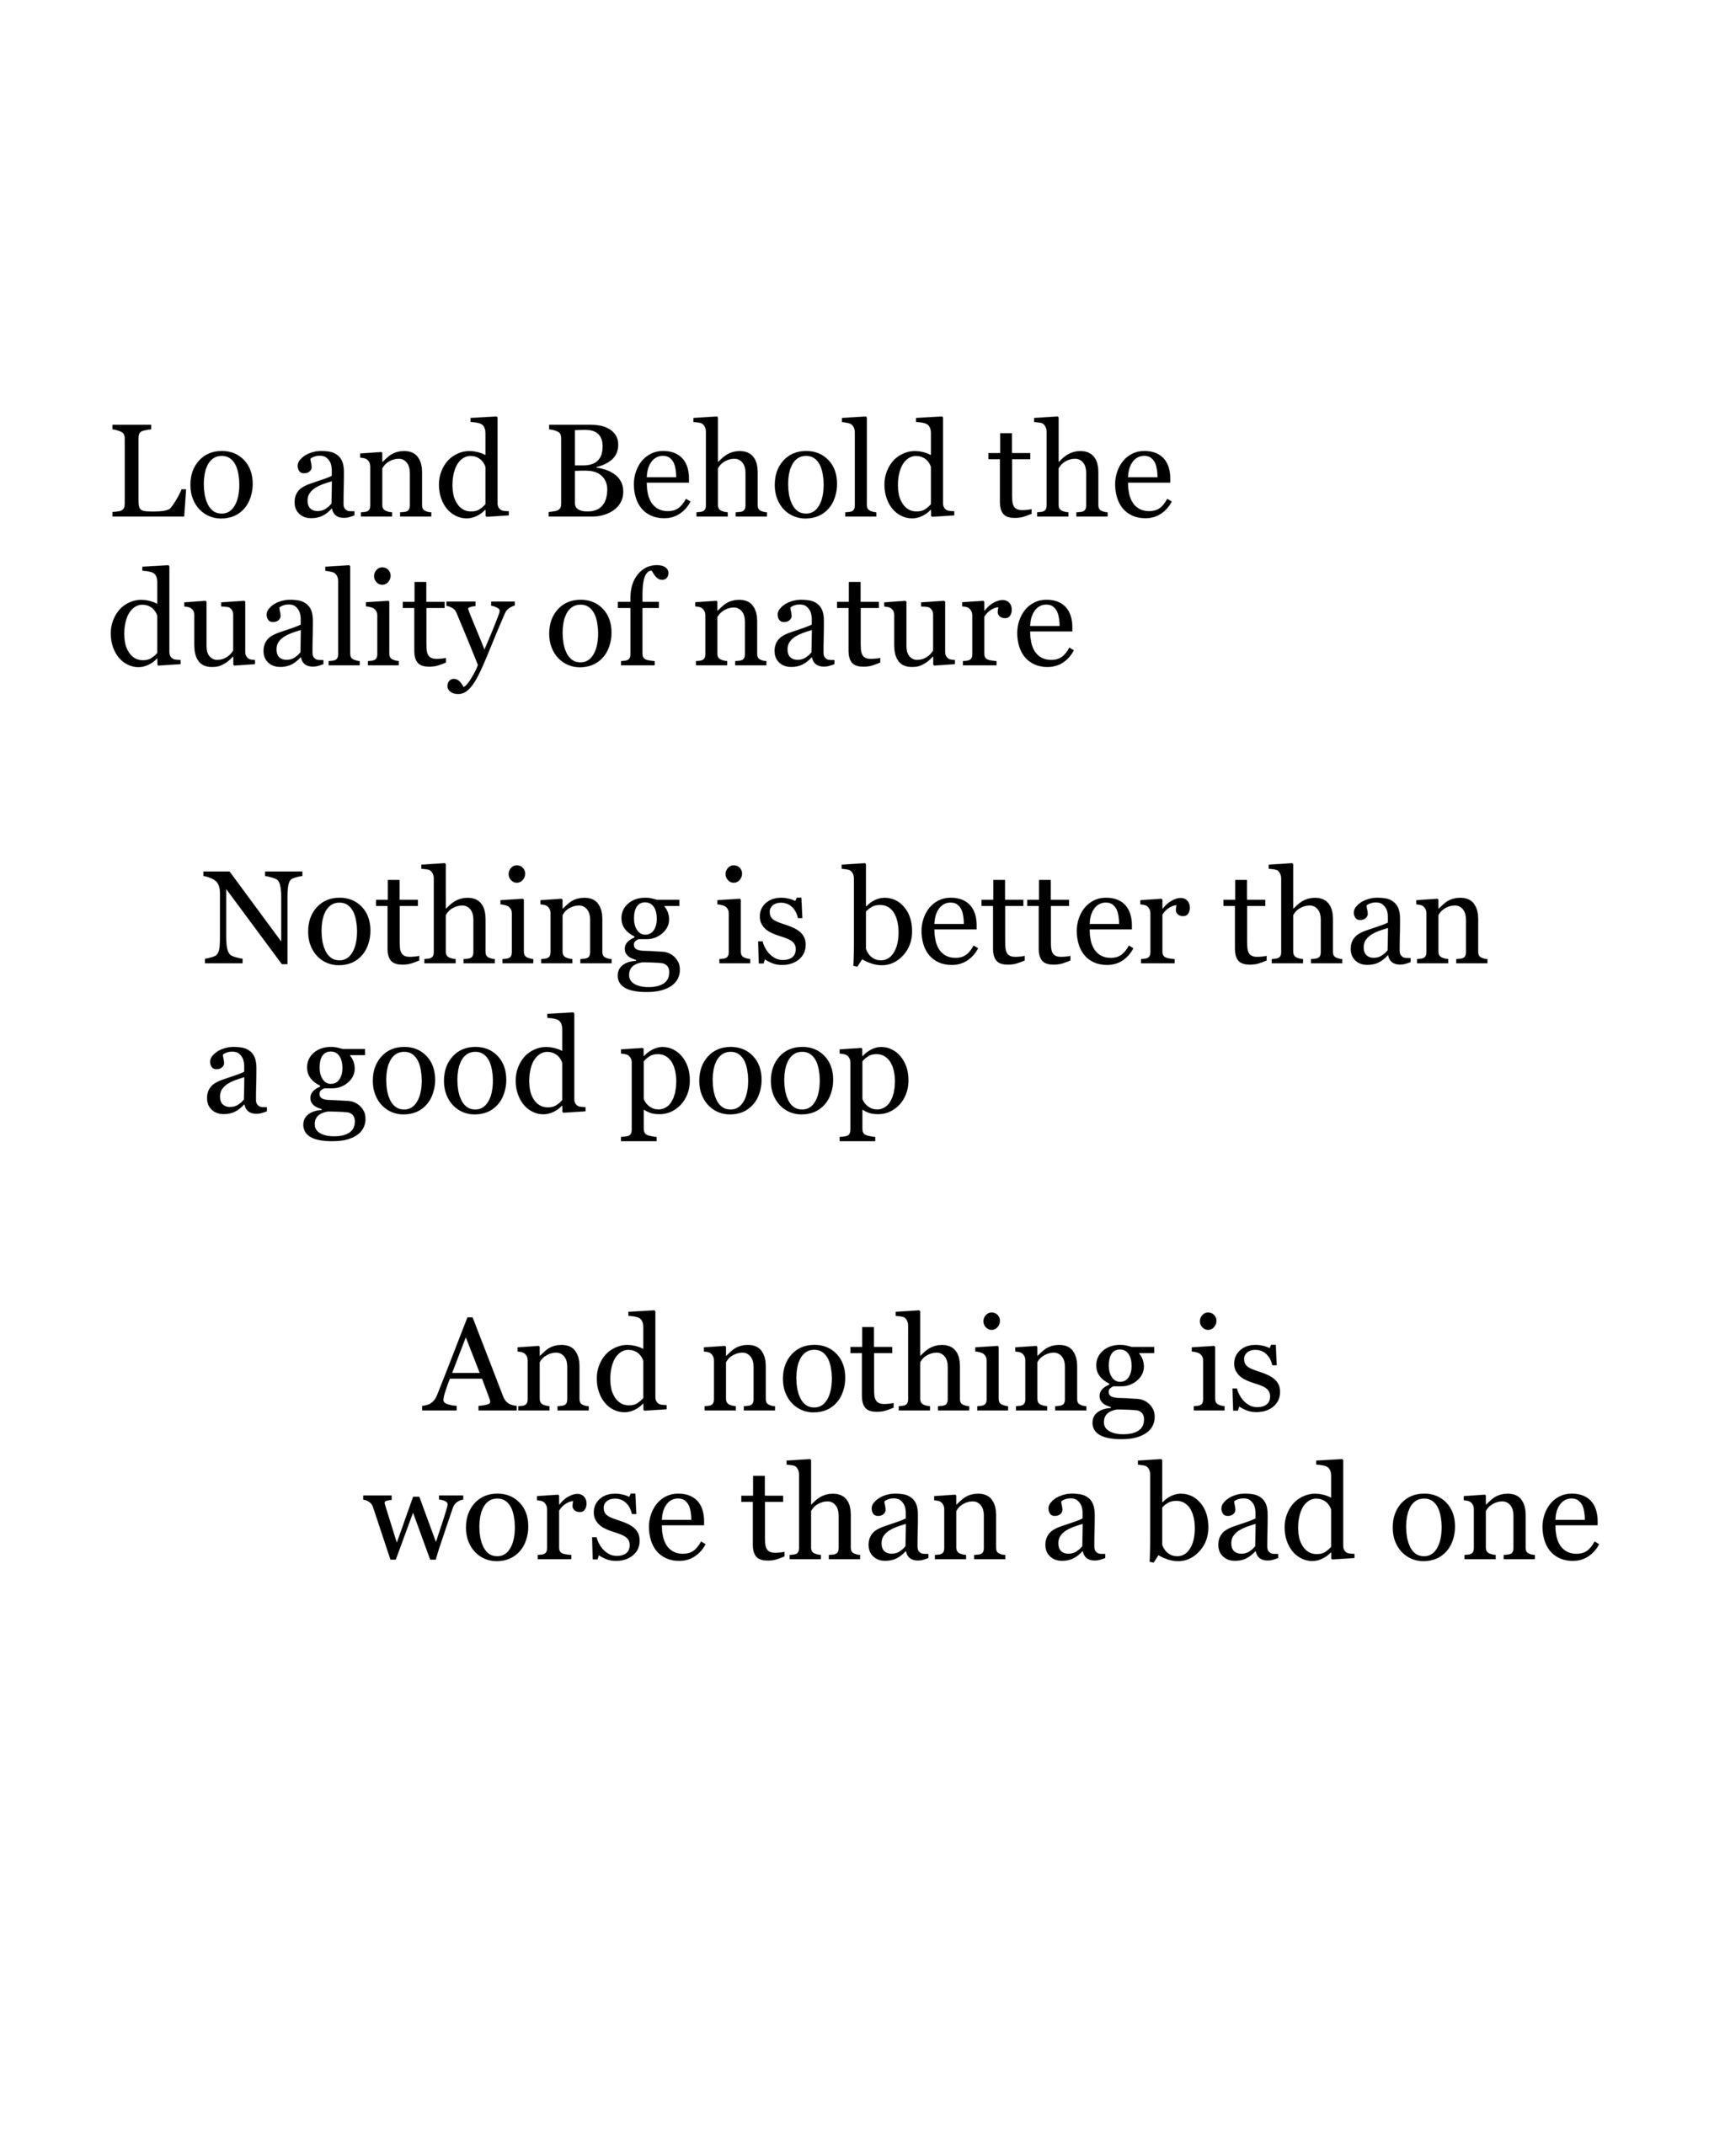 """""""Lo and Behold the duality of nature, Nothing is better than a good poop, And nothing is worse than a bad one"""""""